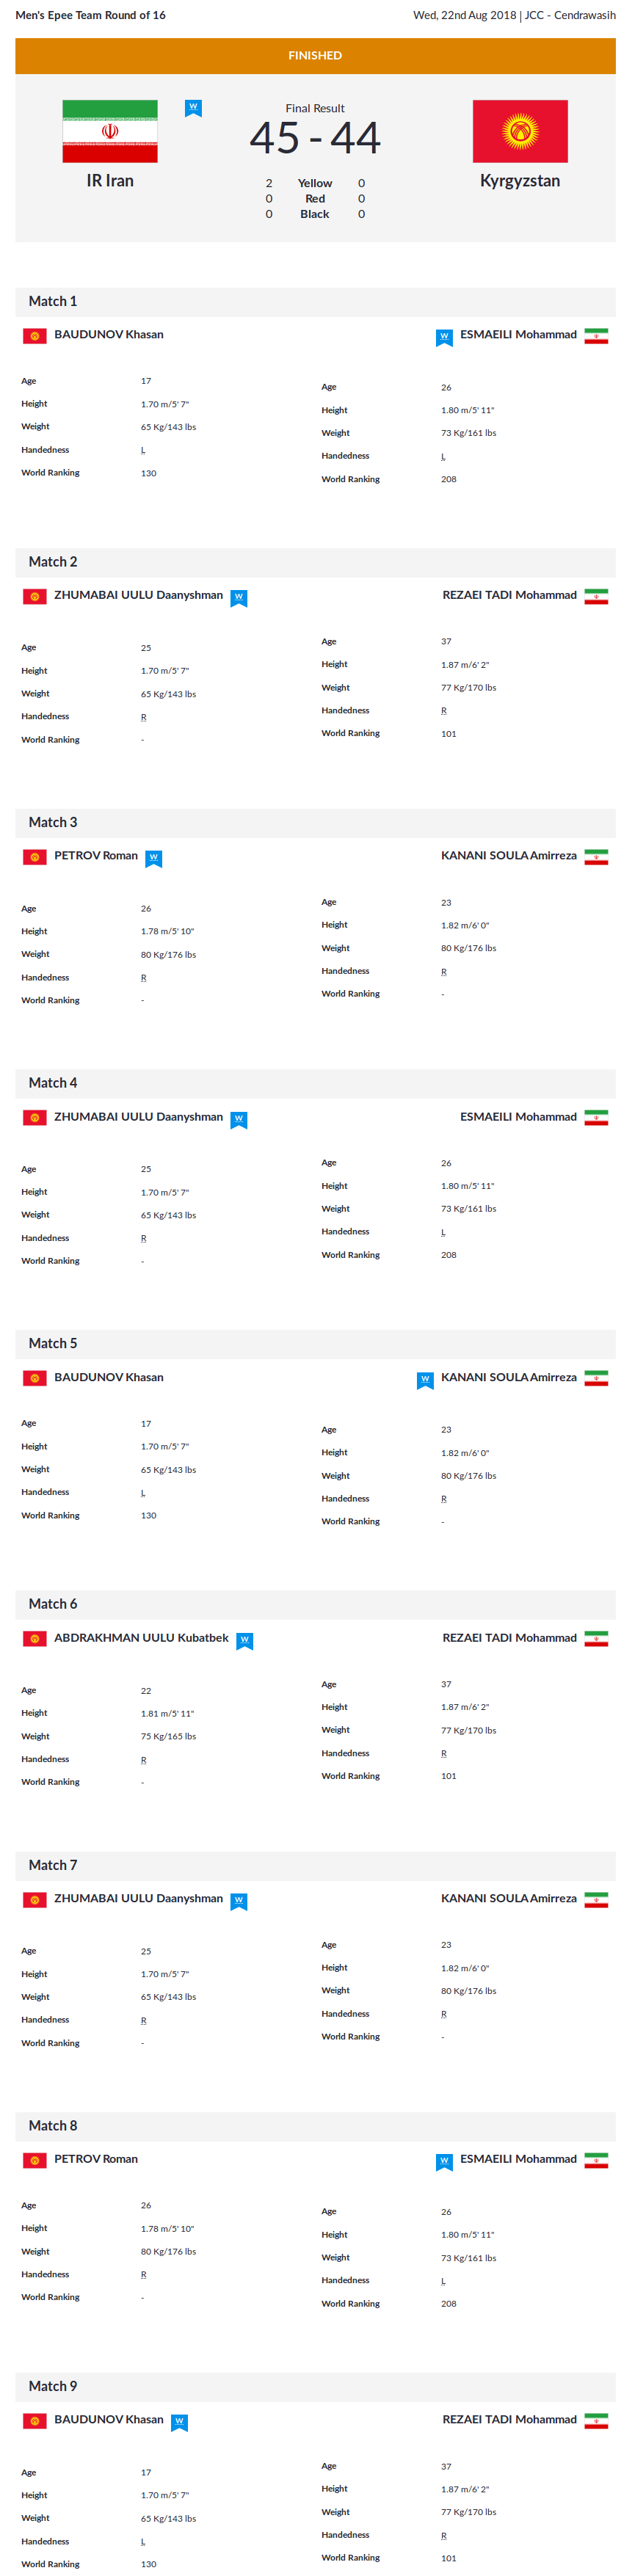 Fencing-Men_s_Epee_Team_Round_of_16_Asian_Games